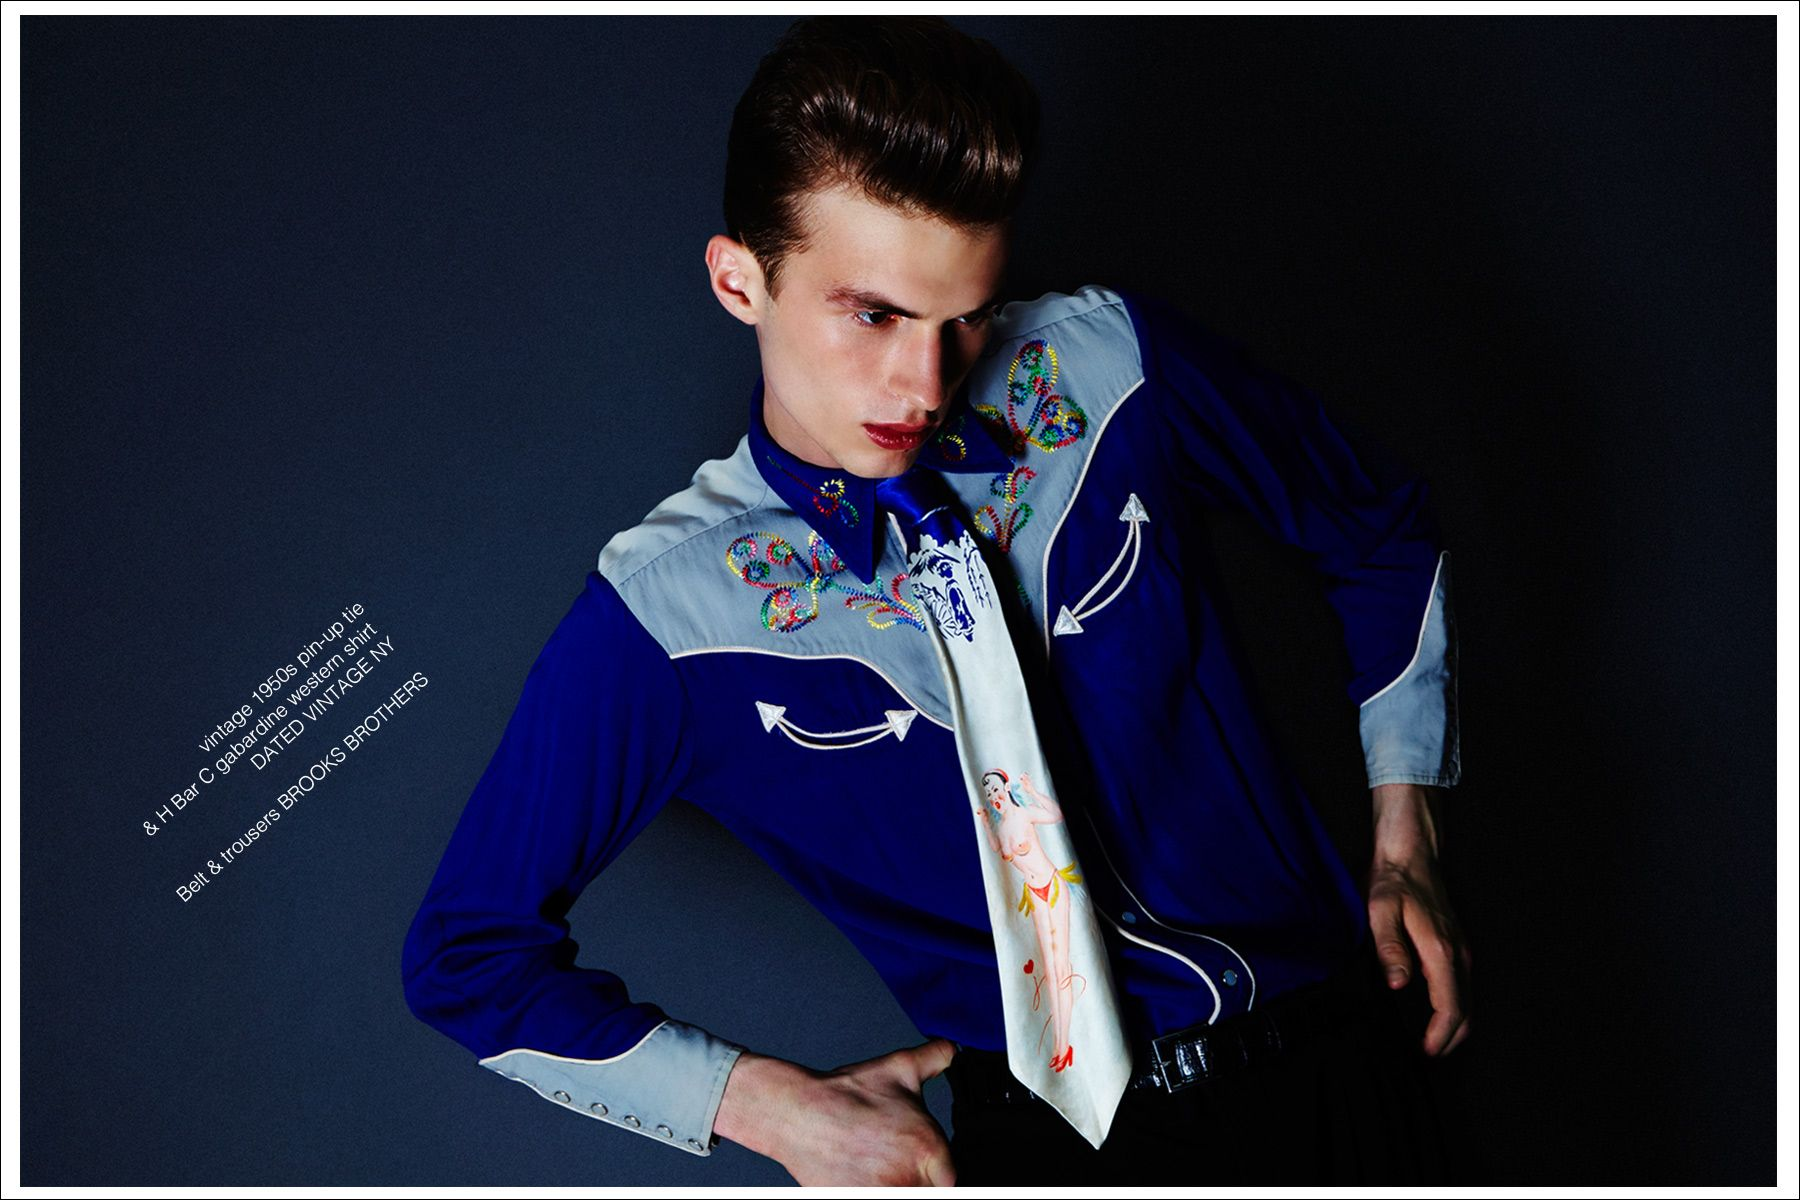 Zach Troost wears a vintage pin-up tie for Ponyboy magazine menswear editorial,